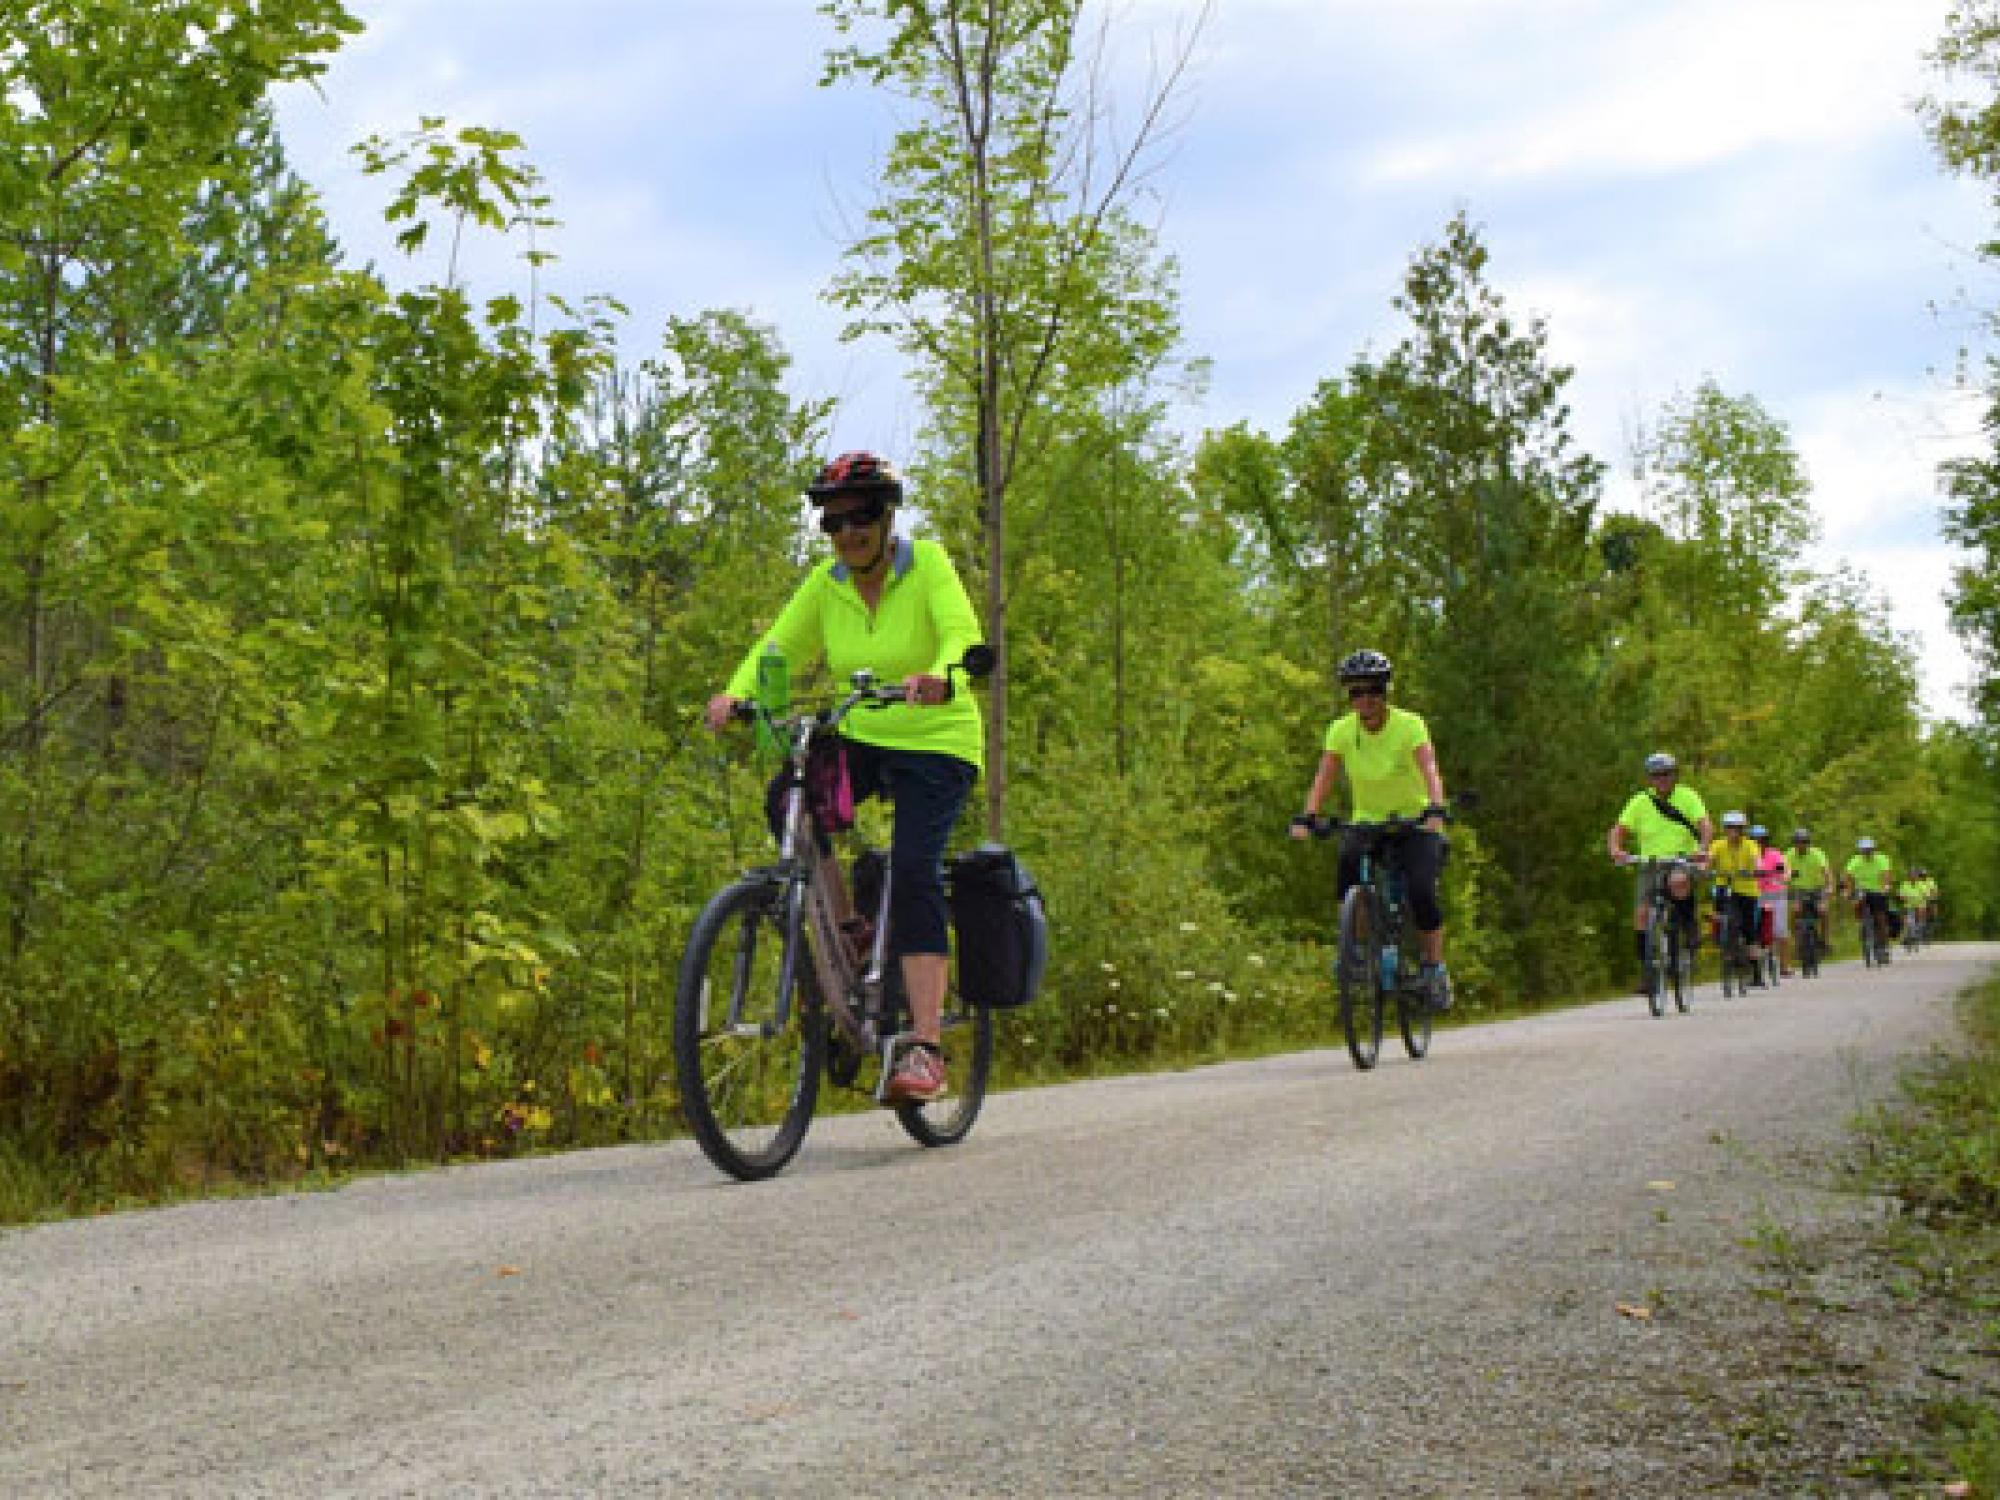 Cyclists on a trail